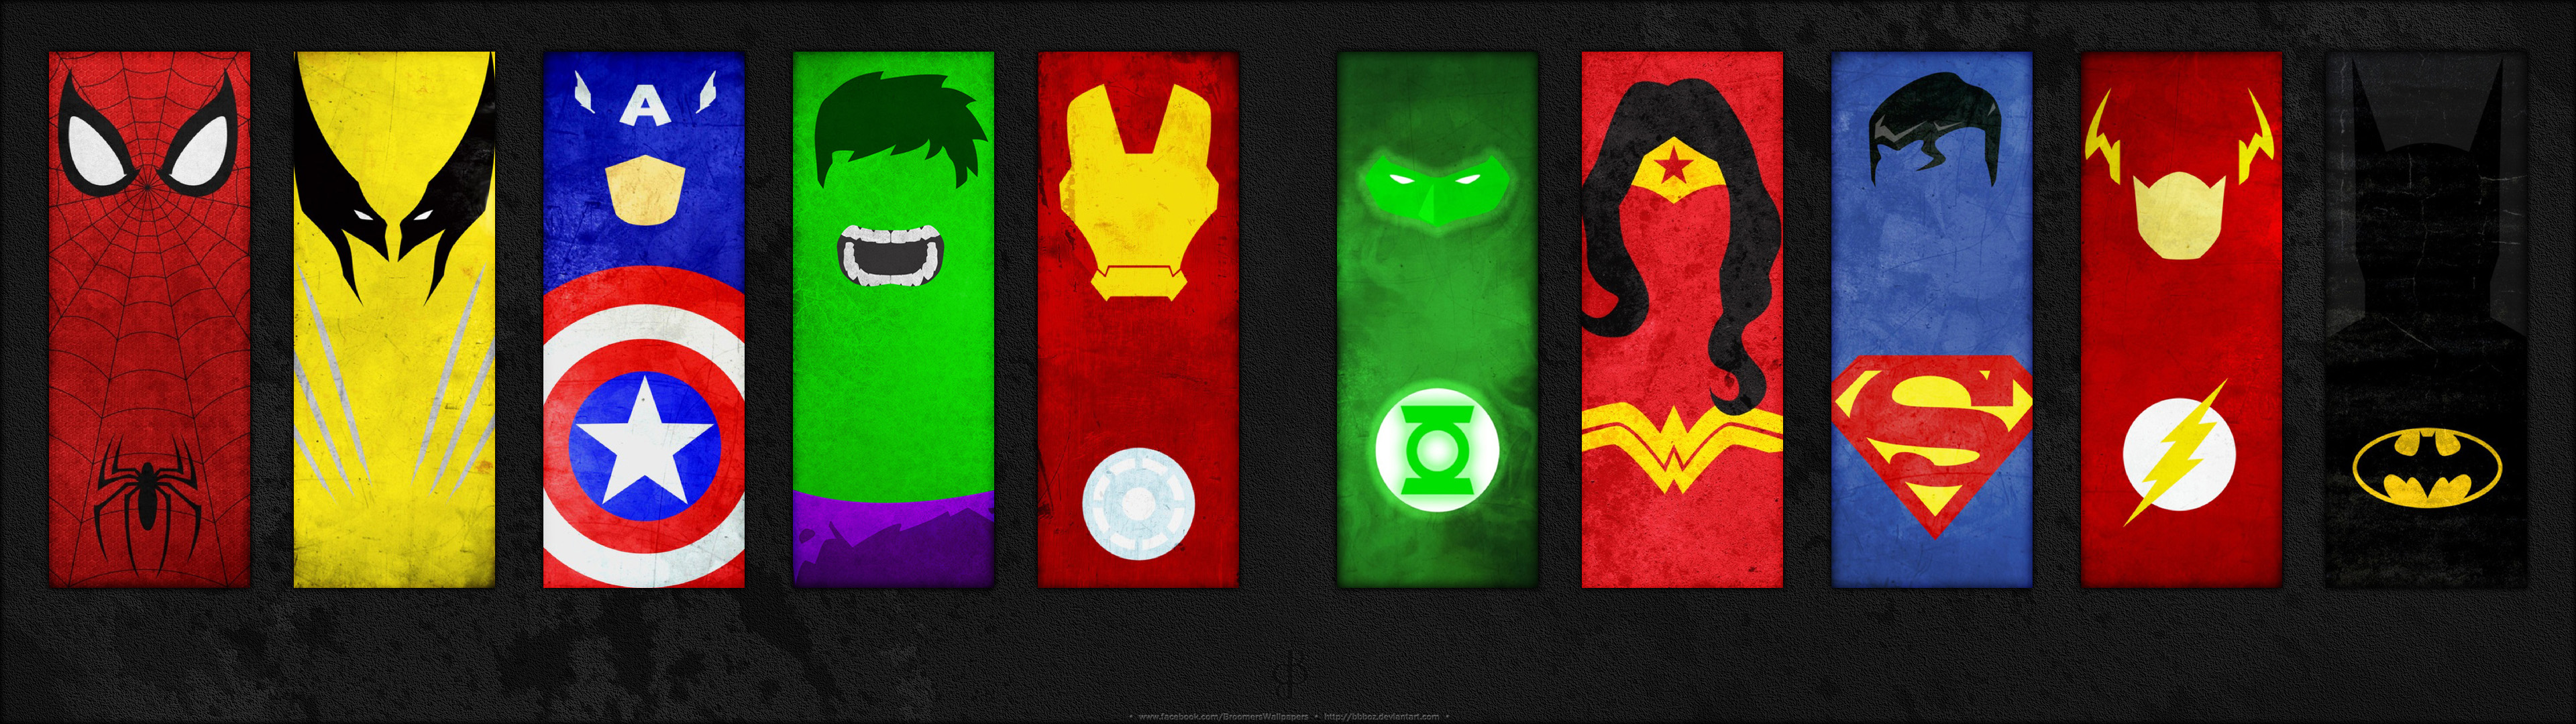 Great Wallpaper Marvel Minimalistic - bDeVQW  Perfect Image Reference_891298.jpg